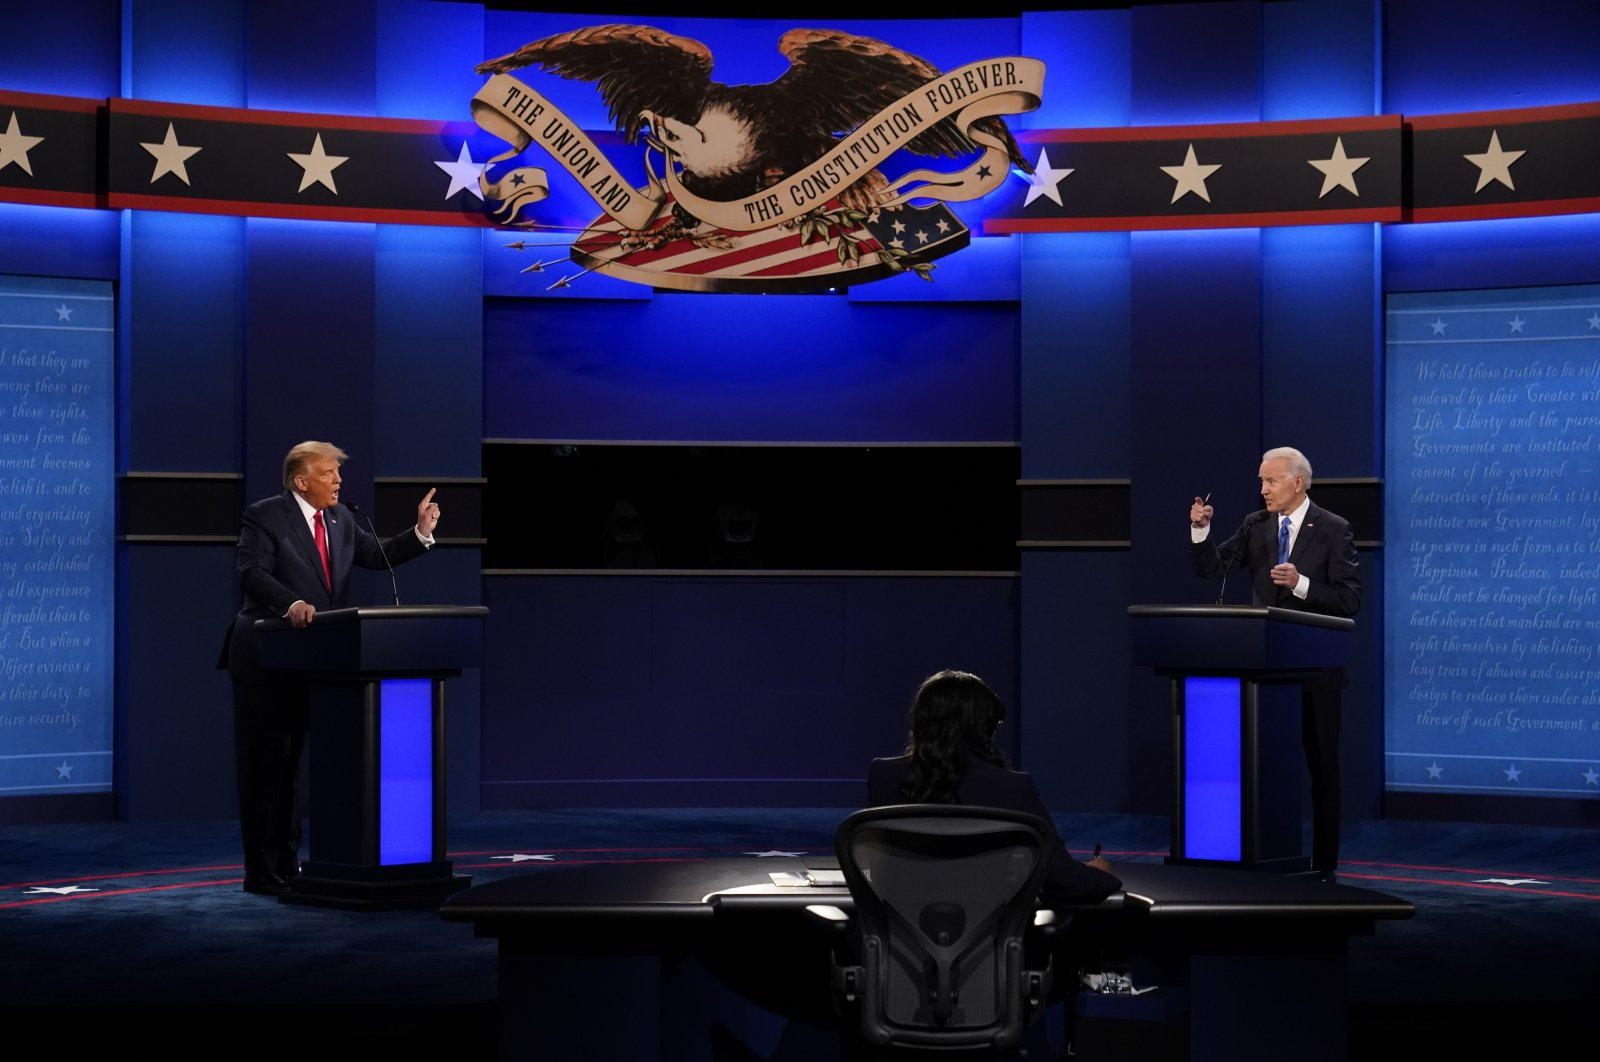 U.S. President Donald Trump and Democratic presidential candidate former Vice President Joe Biden during the second and final presidential debate at Belmont University, Nashville, Tennessee, Oct. 22, 2020. (AP Photo)